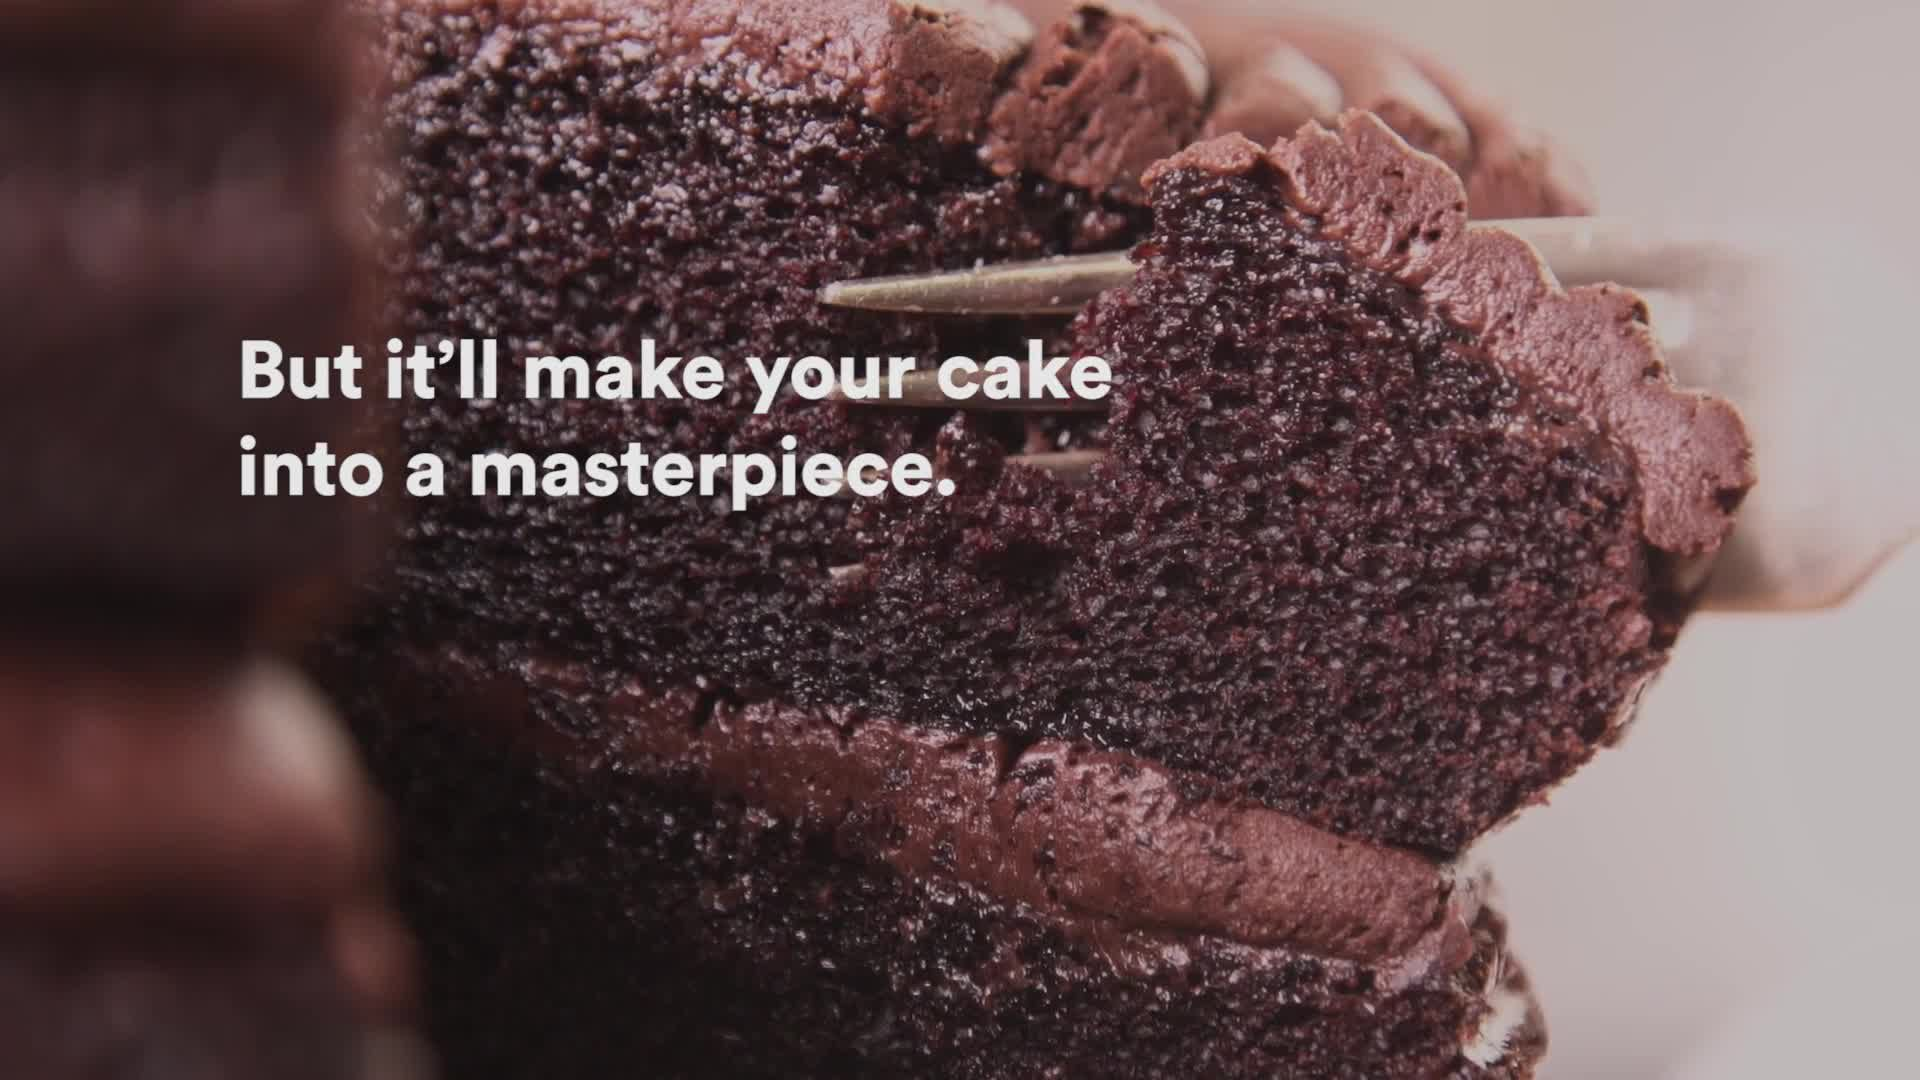 Watch: Add Some Science to Your Chocolate Cake Recipe